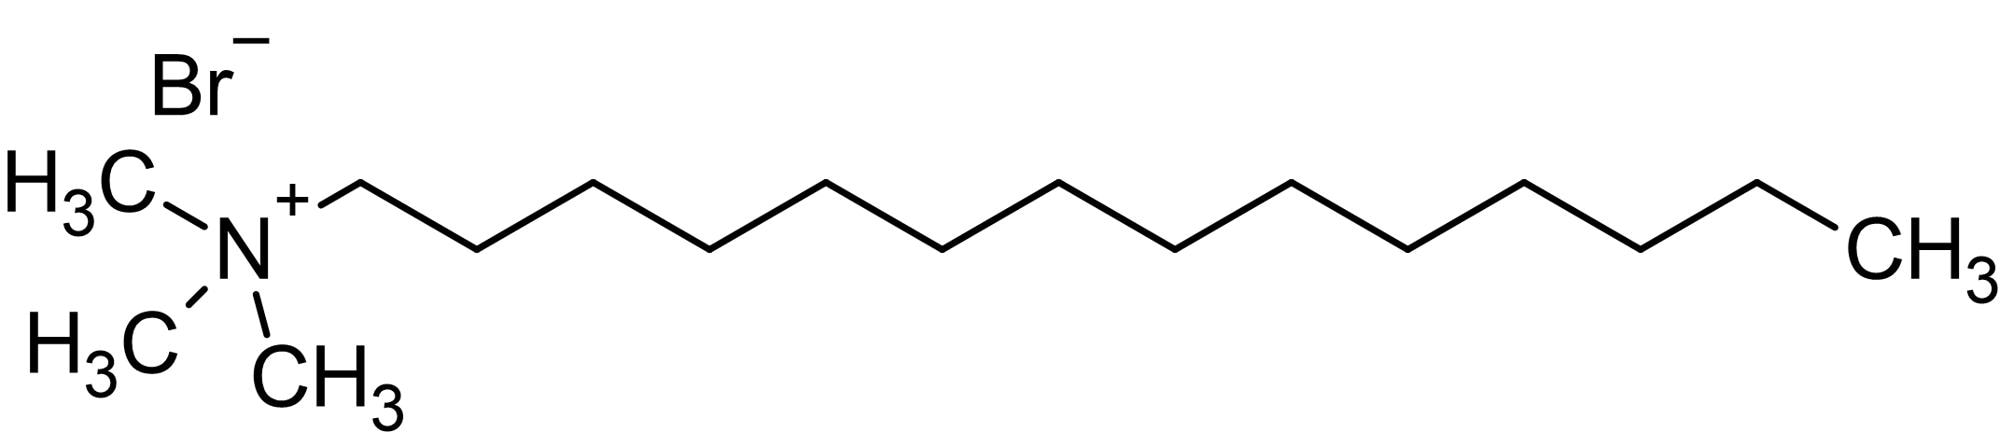 Chemical Structure - MiTMAB™, dynamin I and dynamin II inhibitor (ab120466)